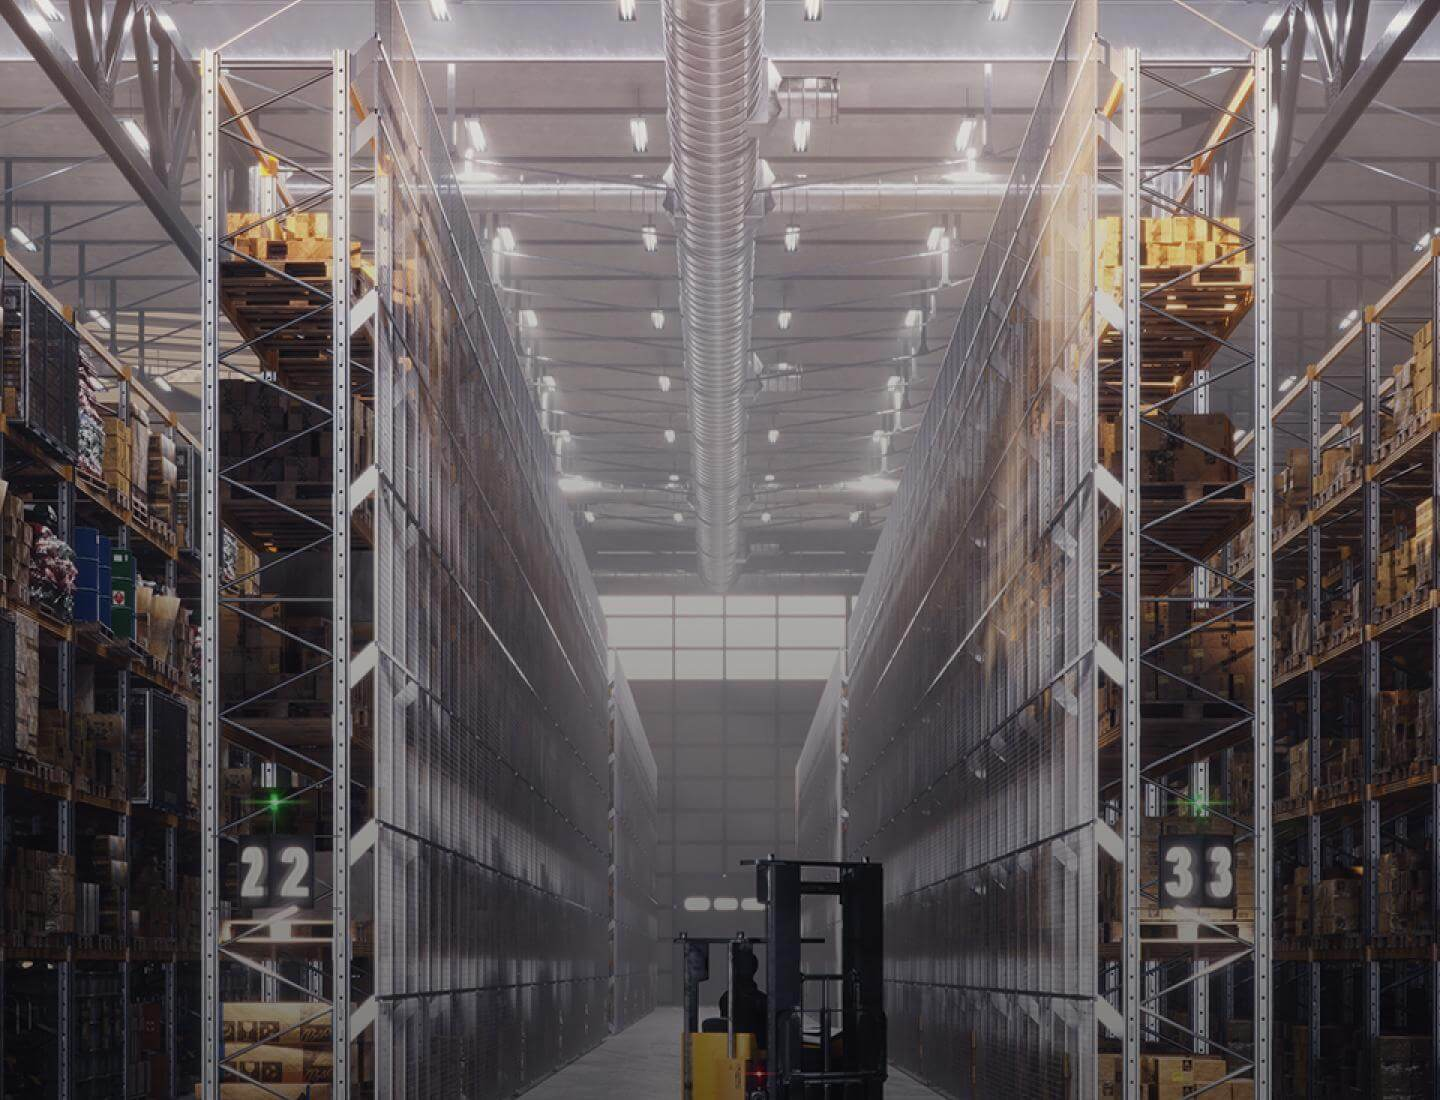 Troax anti-collapse system in a warehouse with pallet racks.